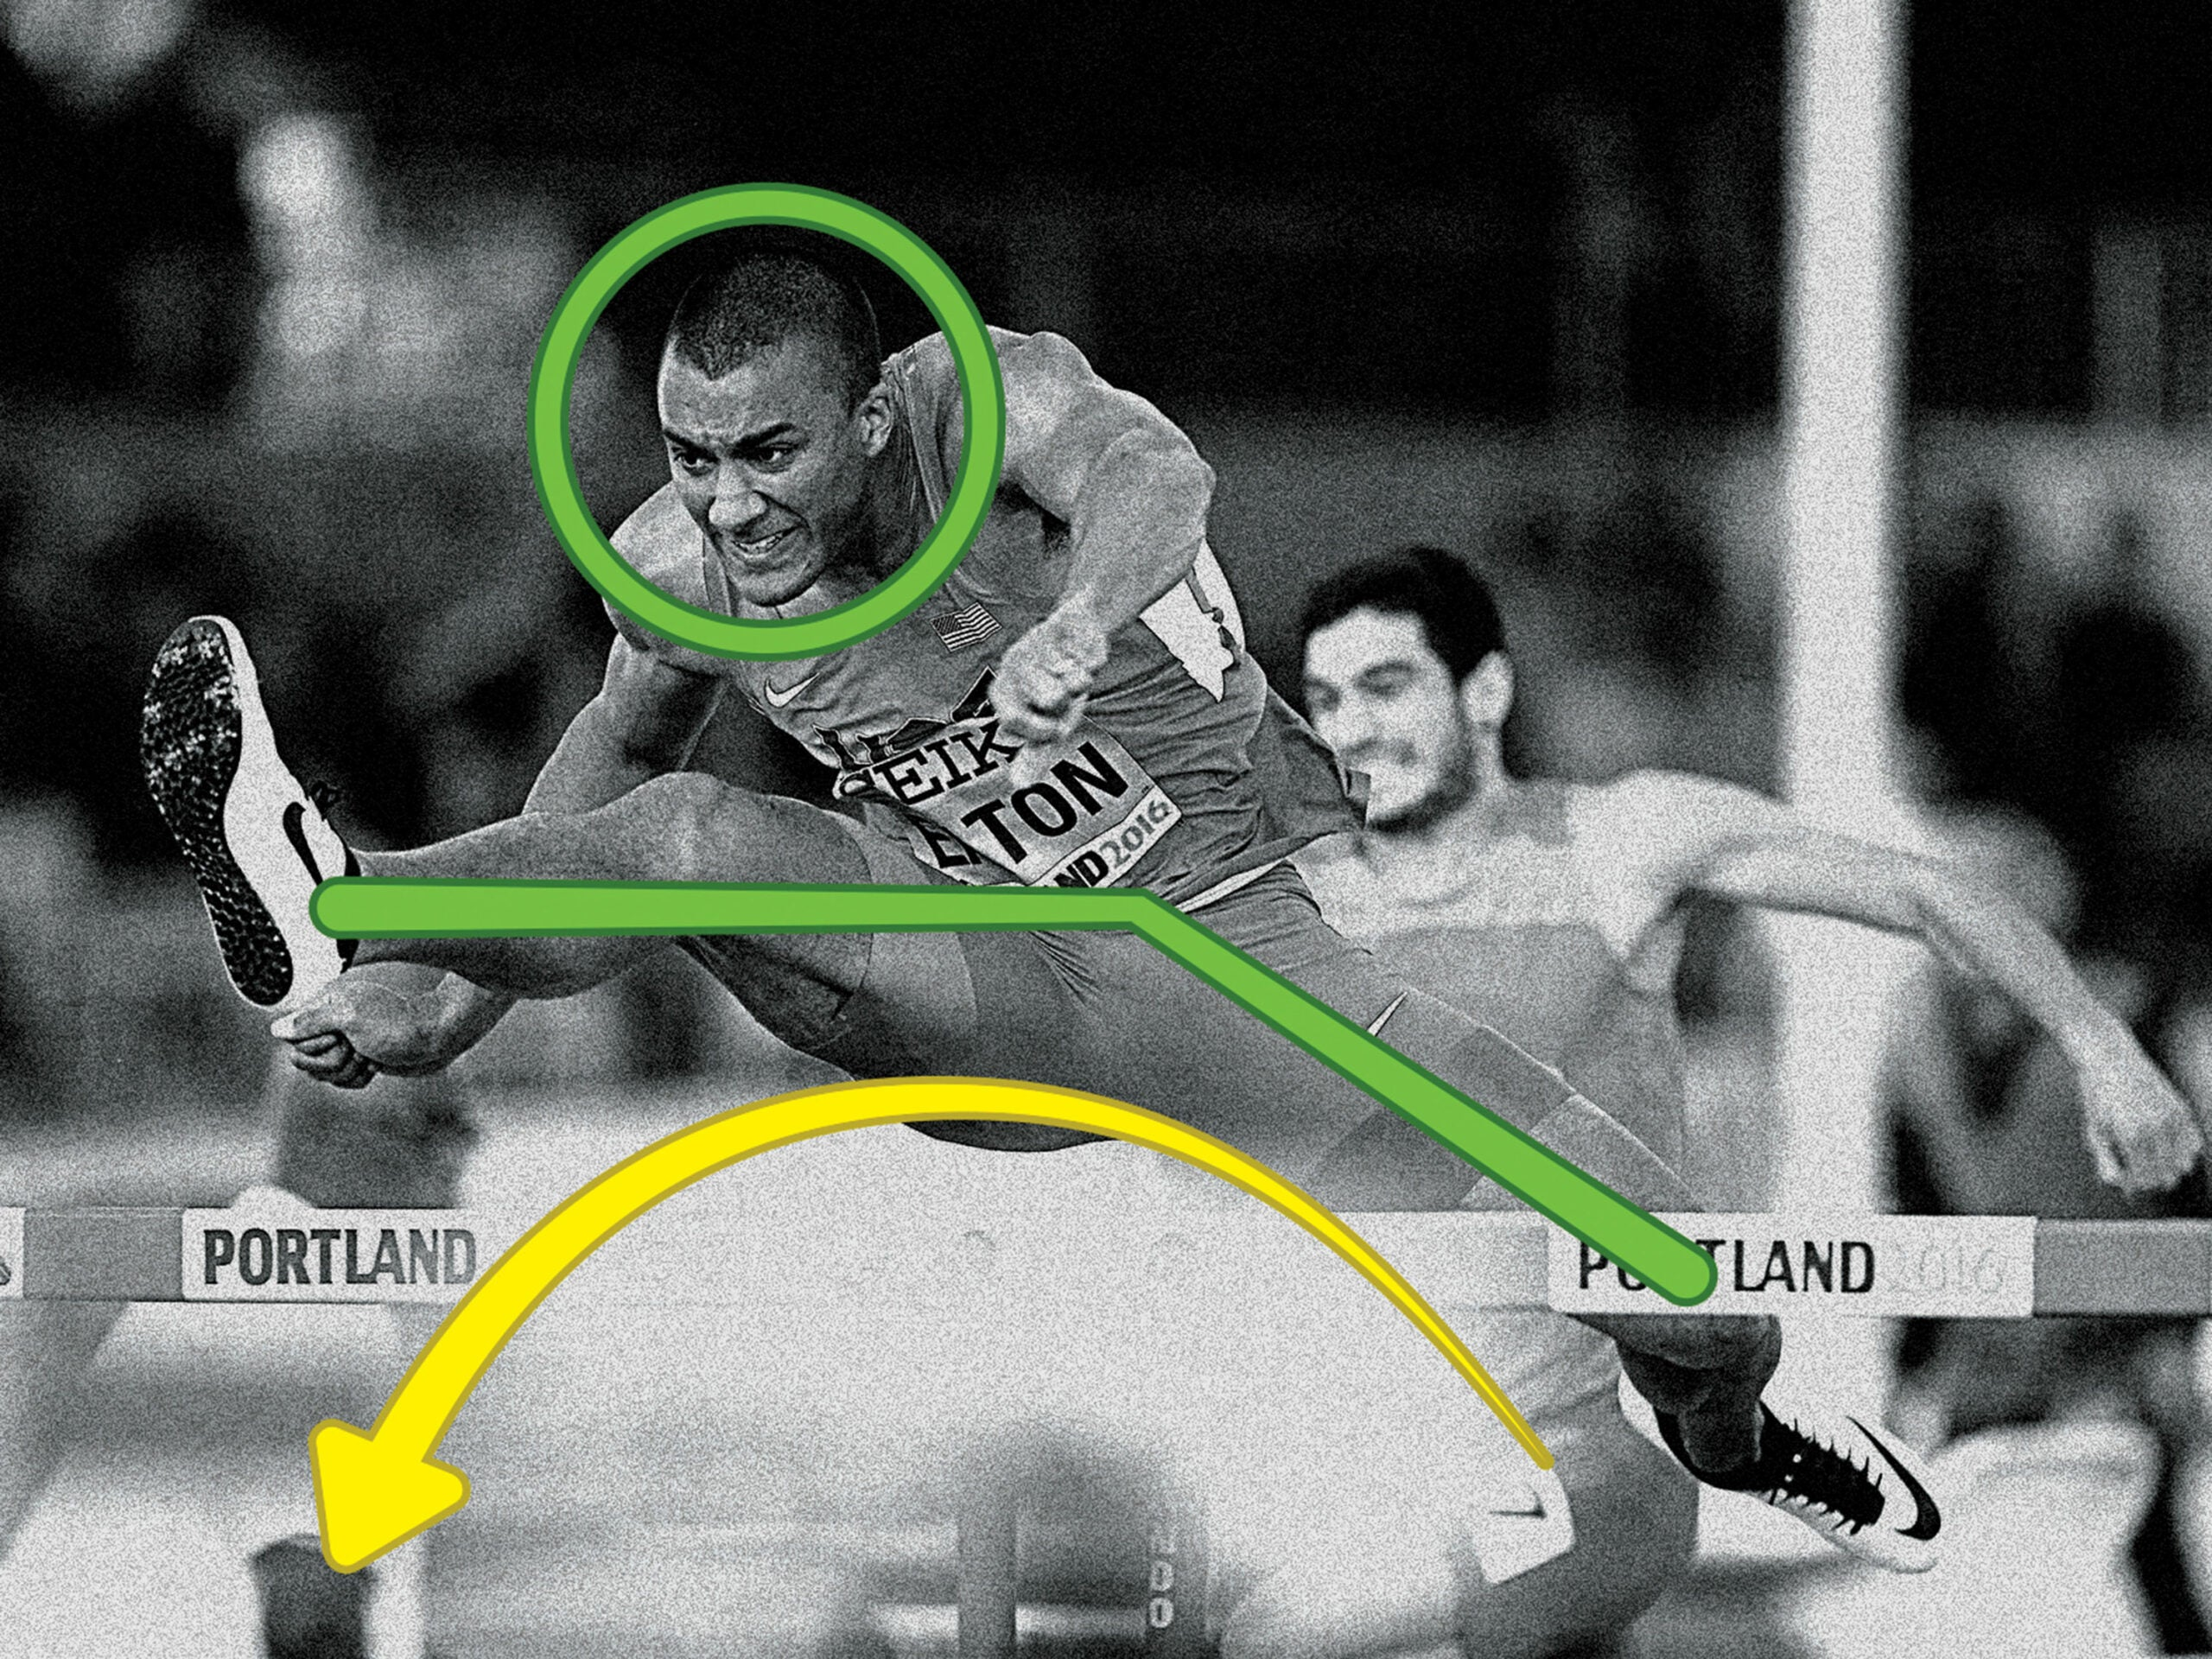 Ashton Eaton Conquers 10 Olympic Events With Simple Smartphone Apps